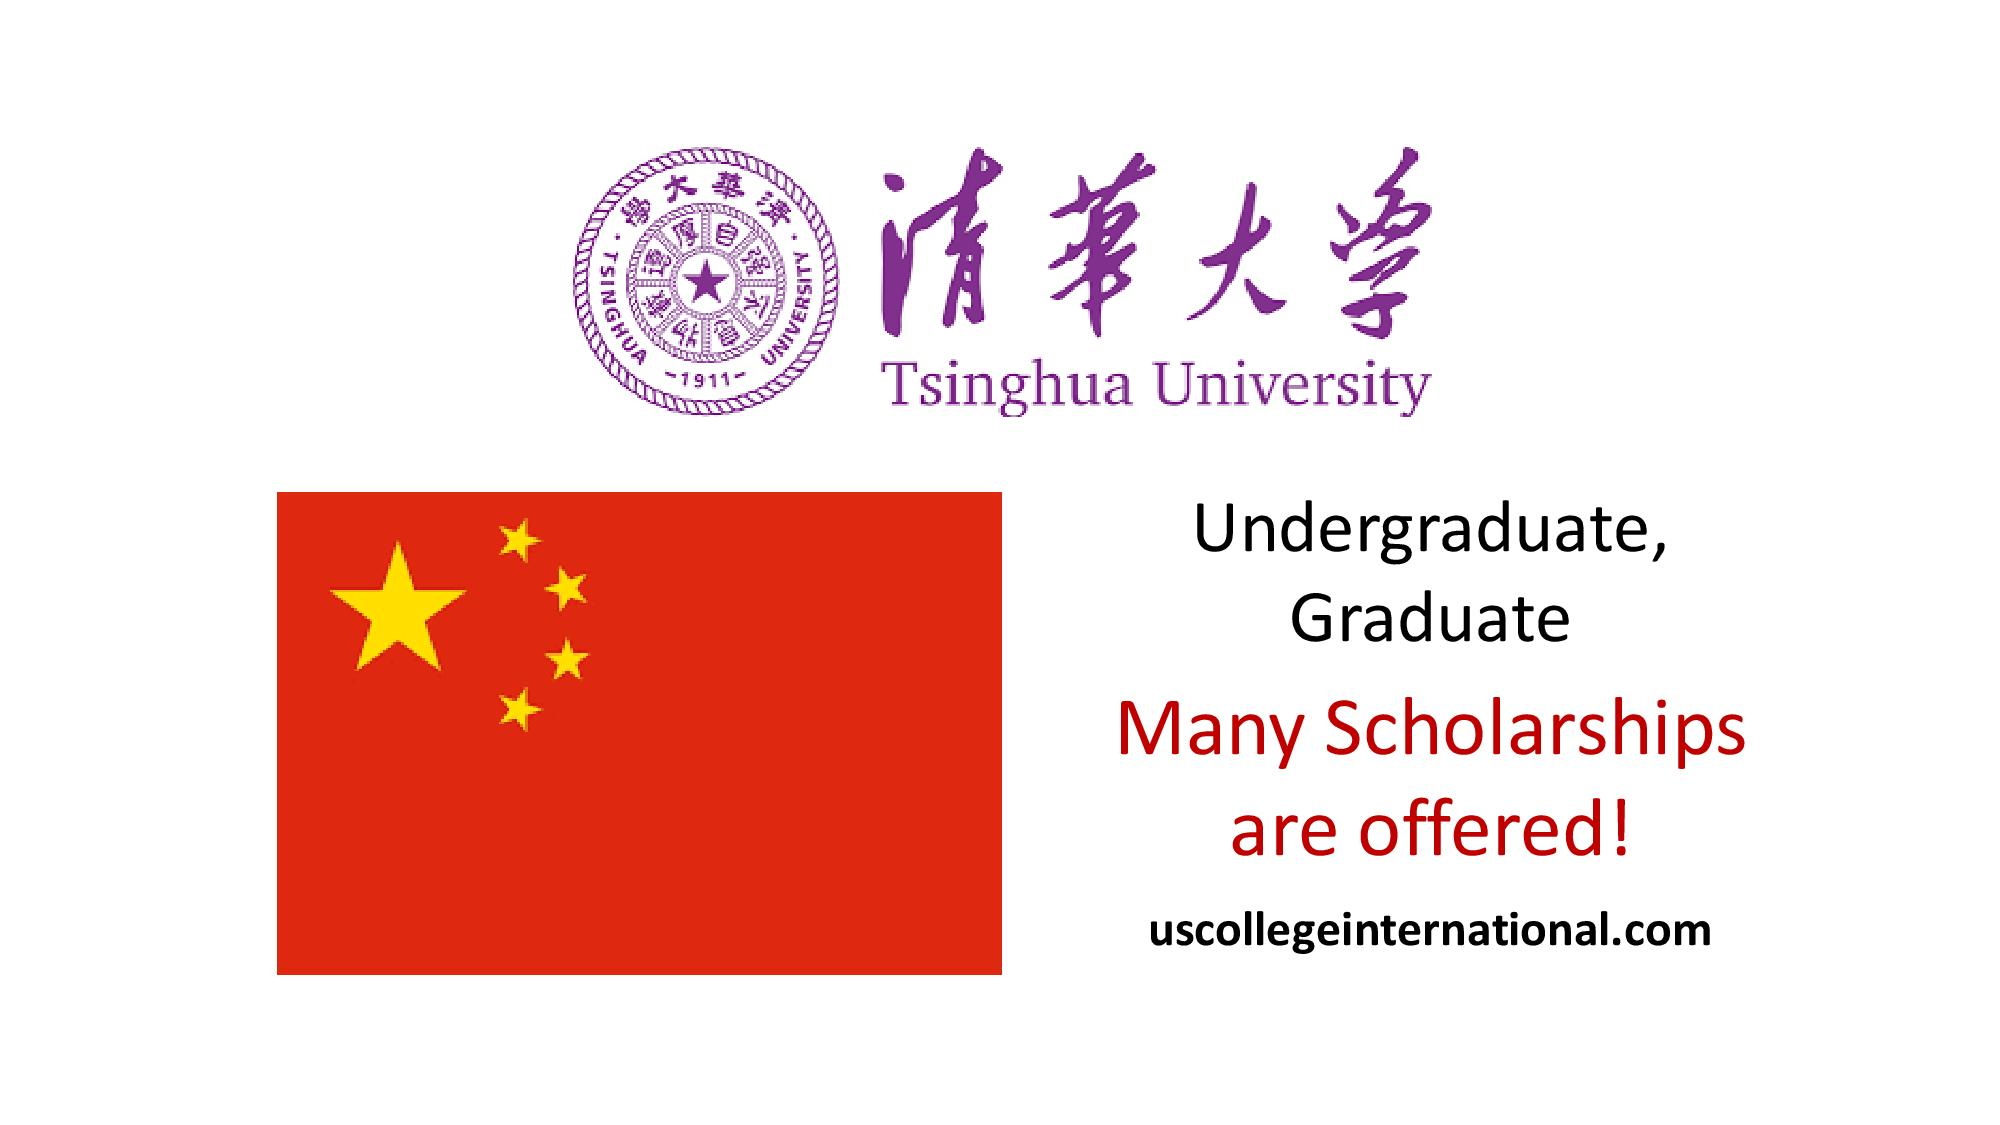 Tsinghua University Scholarships